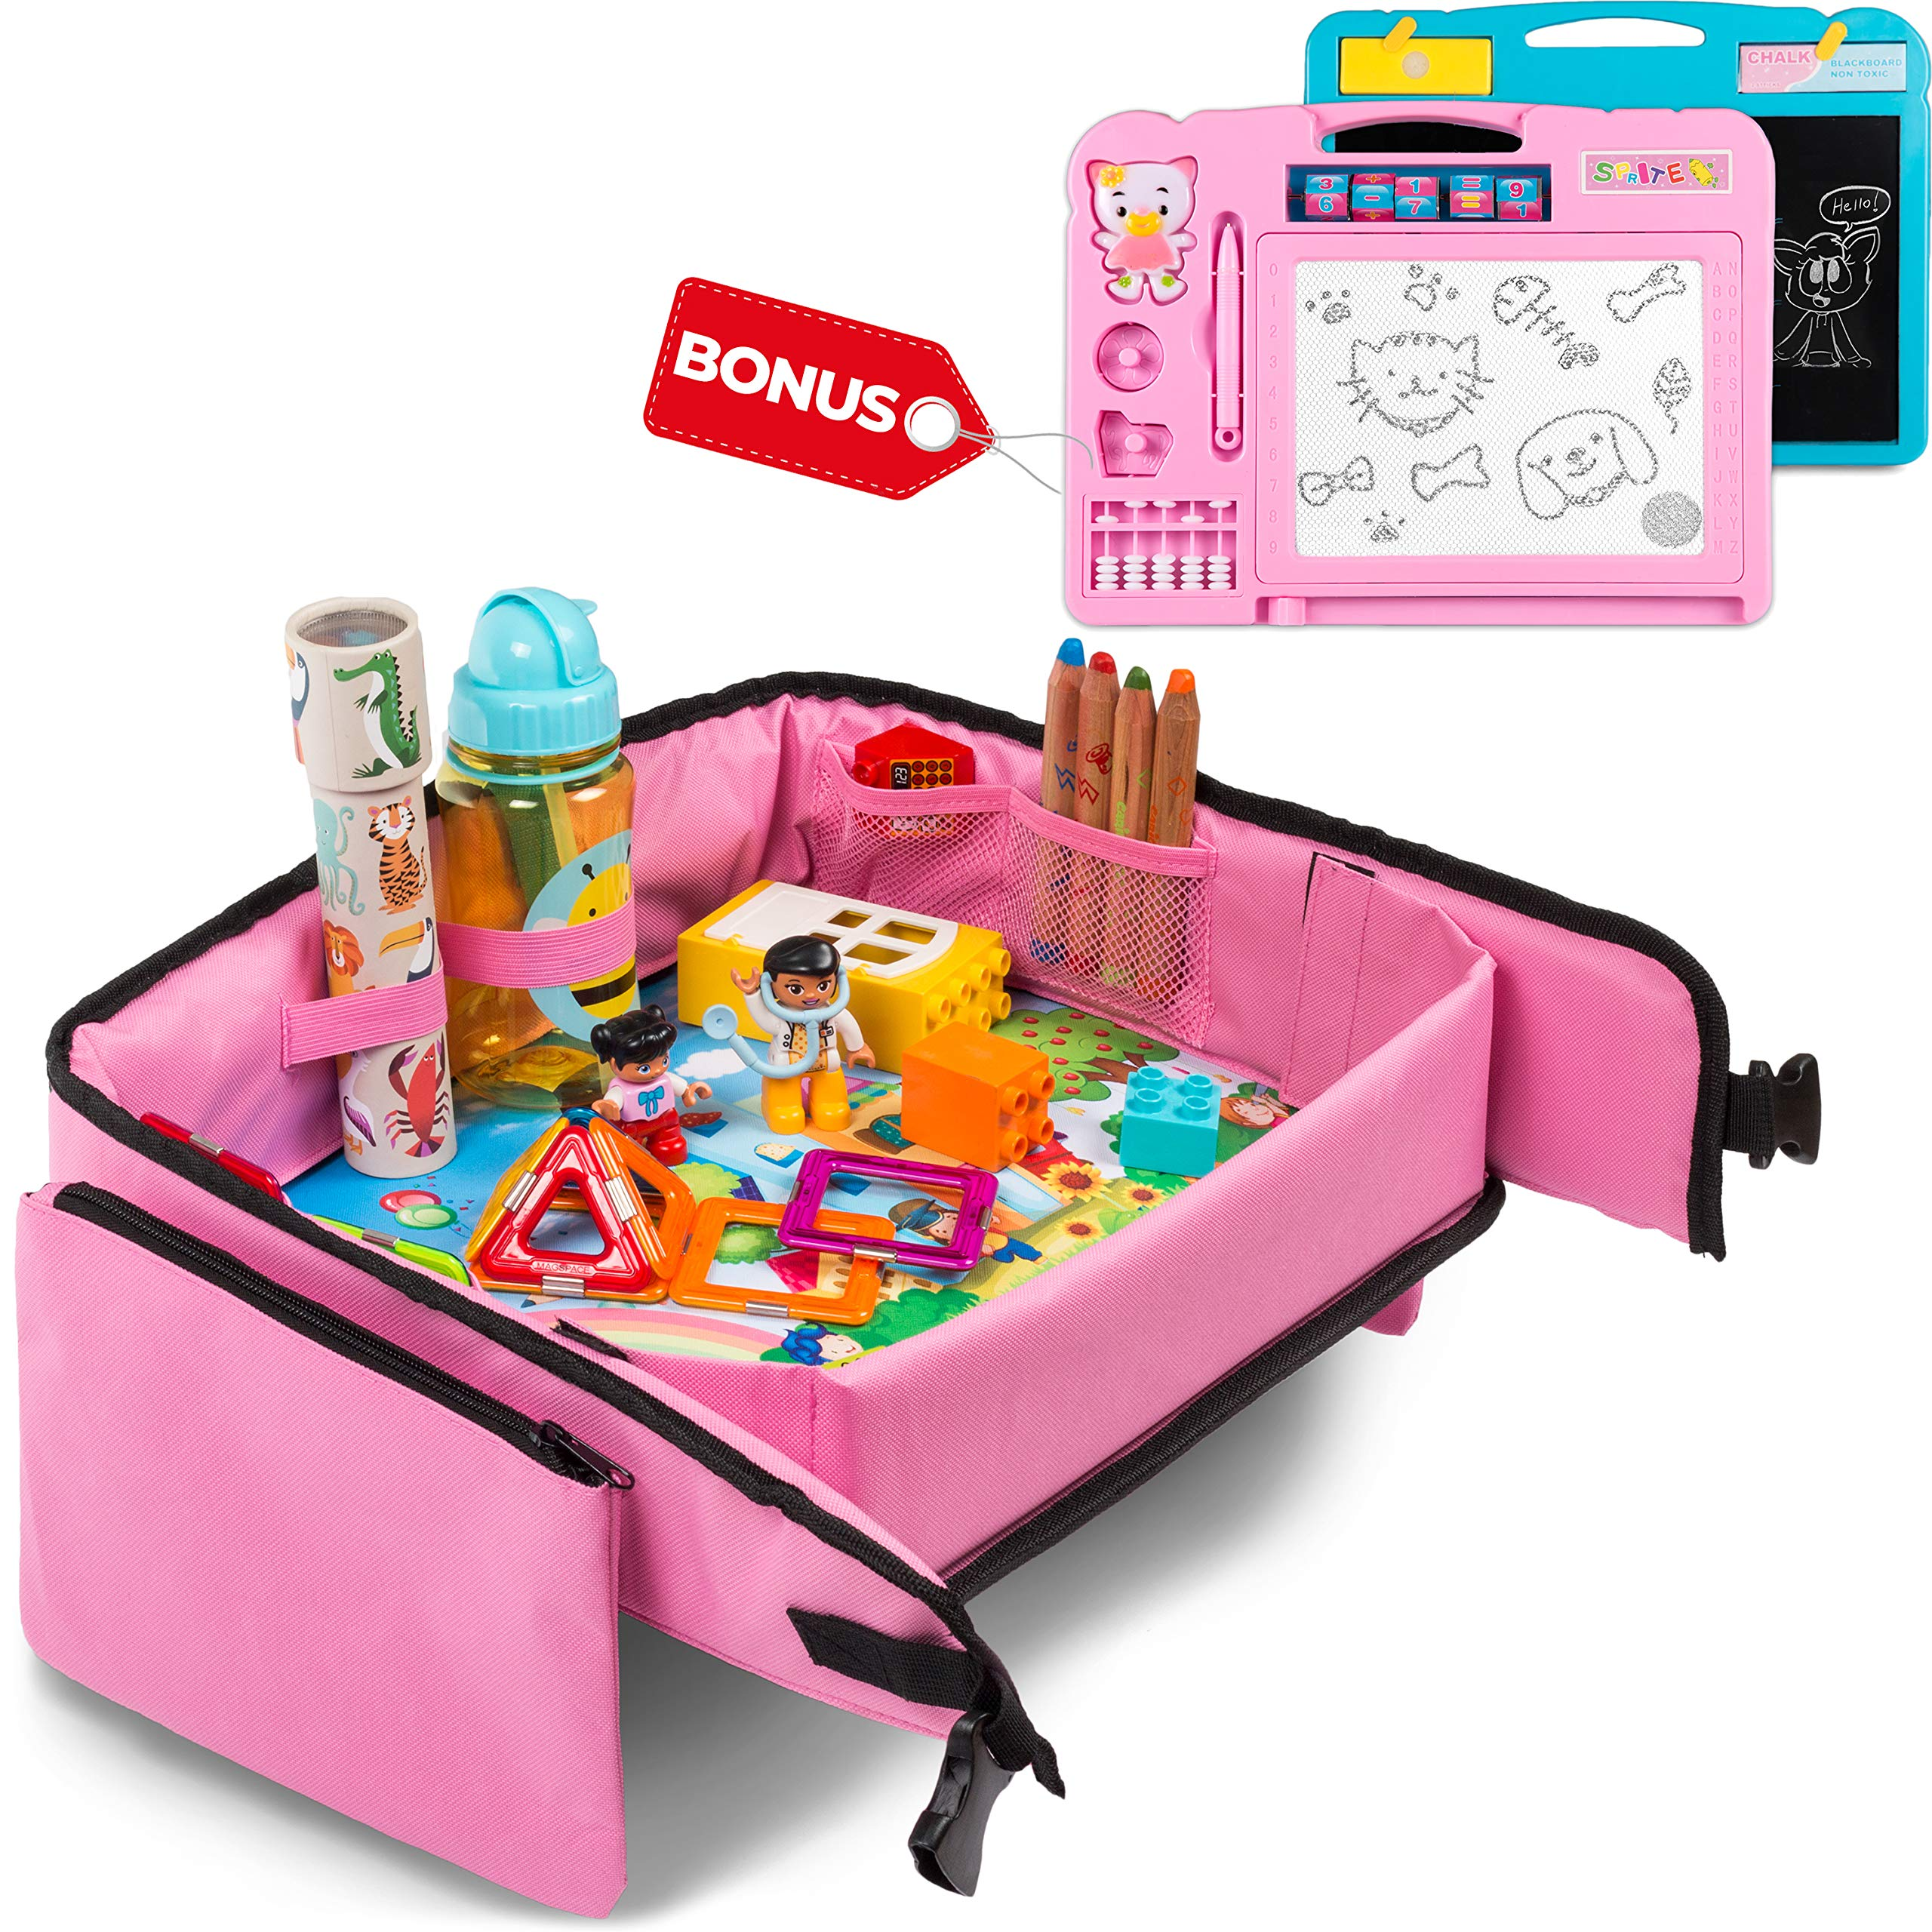 Toddler Travel Tray (Pink) + Bonus 2 in 1 Magnetic Drawing Board & Chalkboard |Car Seat Tray for Kids | Car Seat Travel Trays | Lap Desk, Activity Tray, Stroller Tray, Play Tray